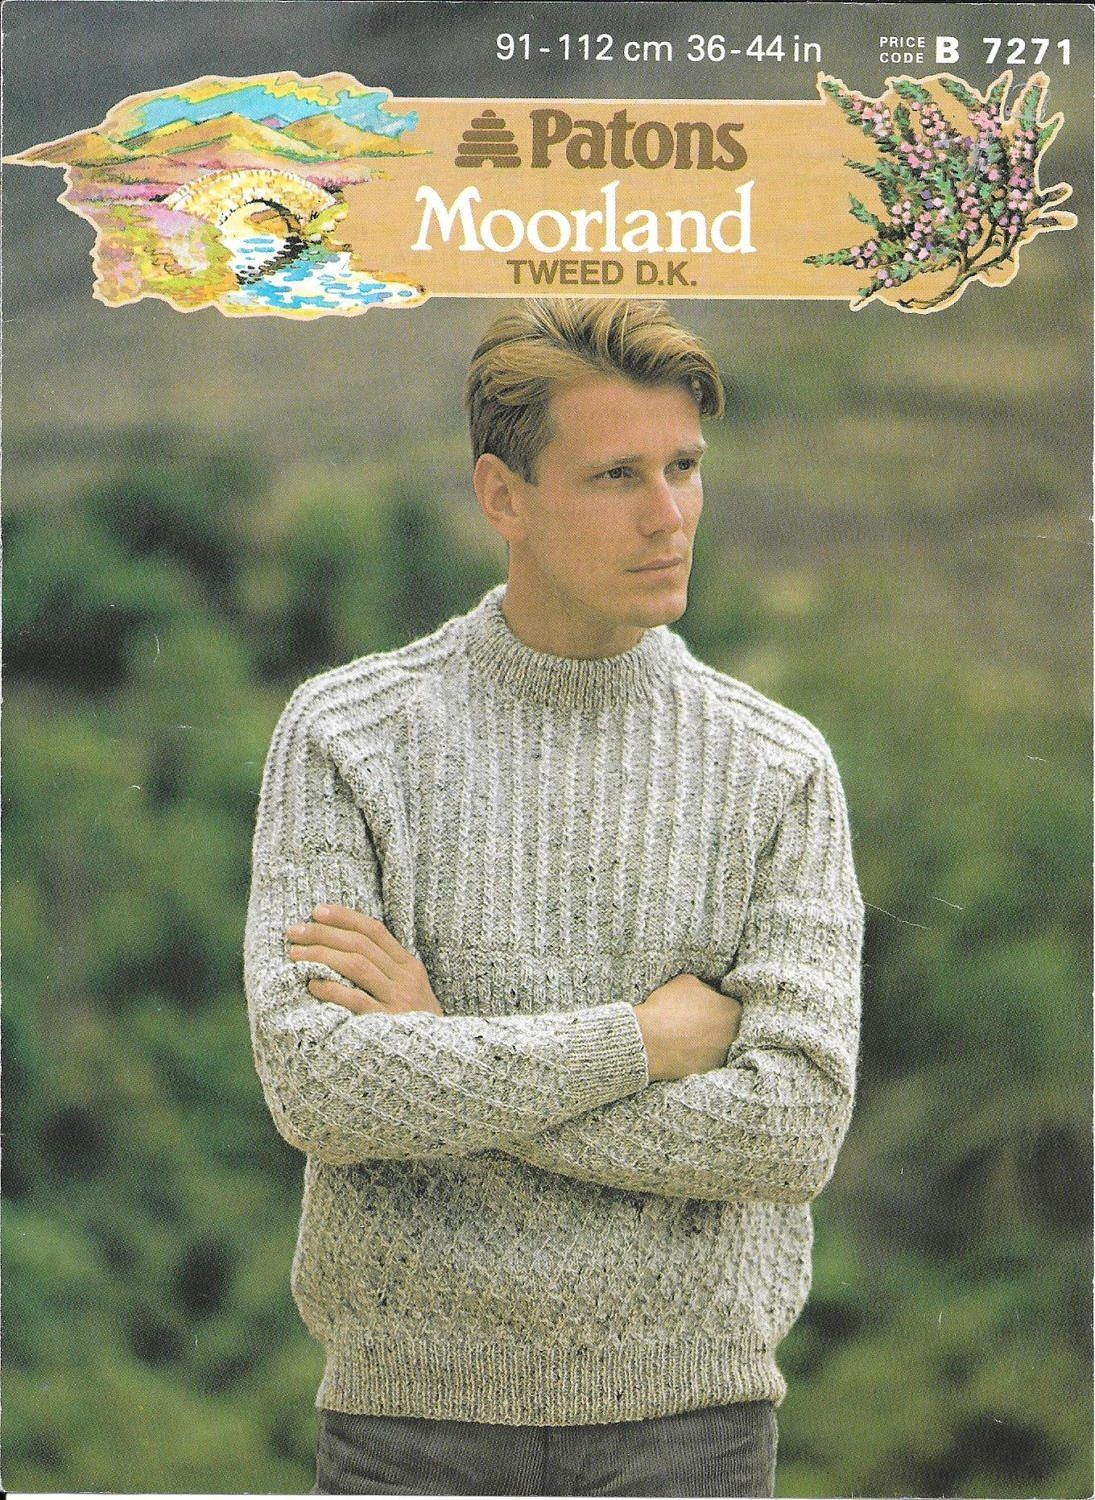 Knitting pattern for a mens tweed dk sweater by bettysgiftbazzar knitting pattern for a mens tweed dk sweater by bettysgiftbazzar on etsy bankloansurffo Choice Image